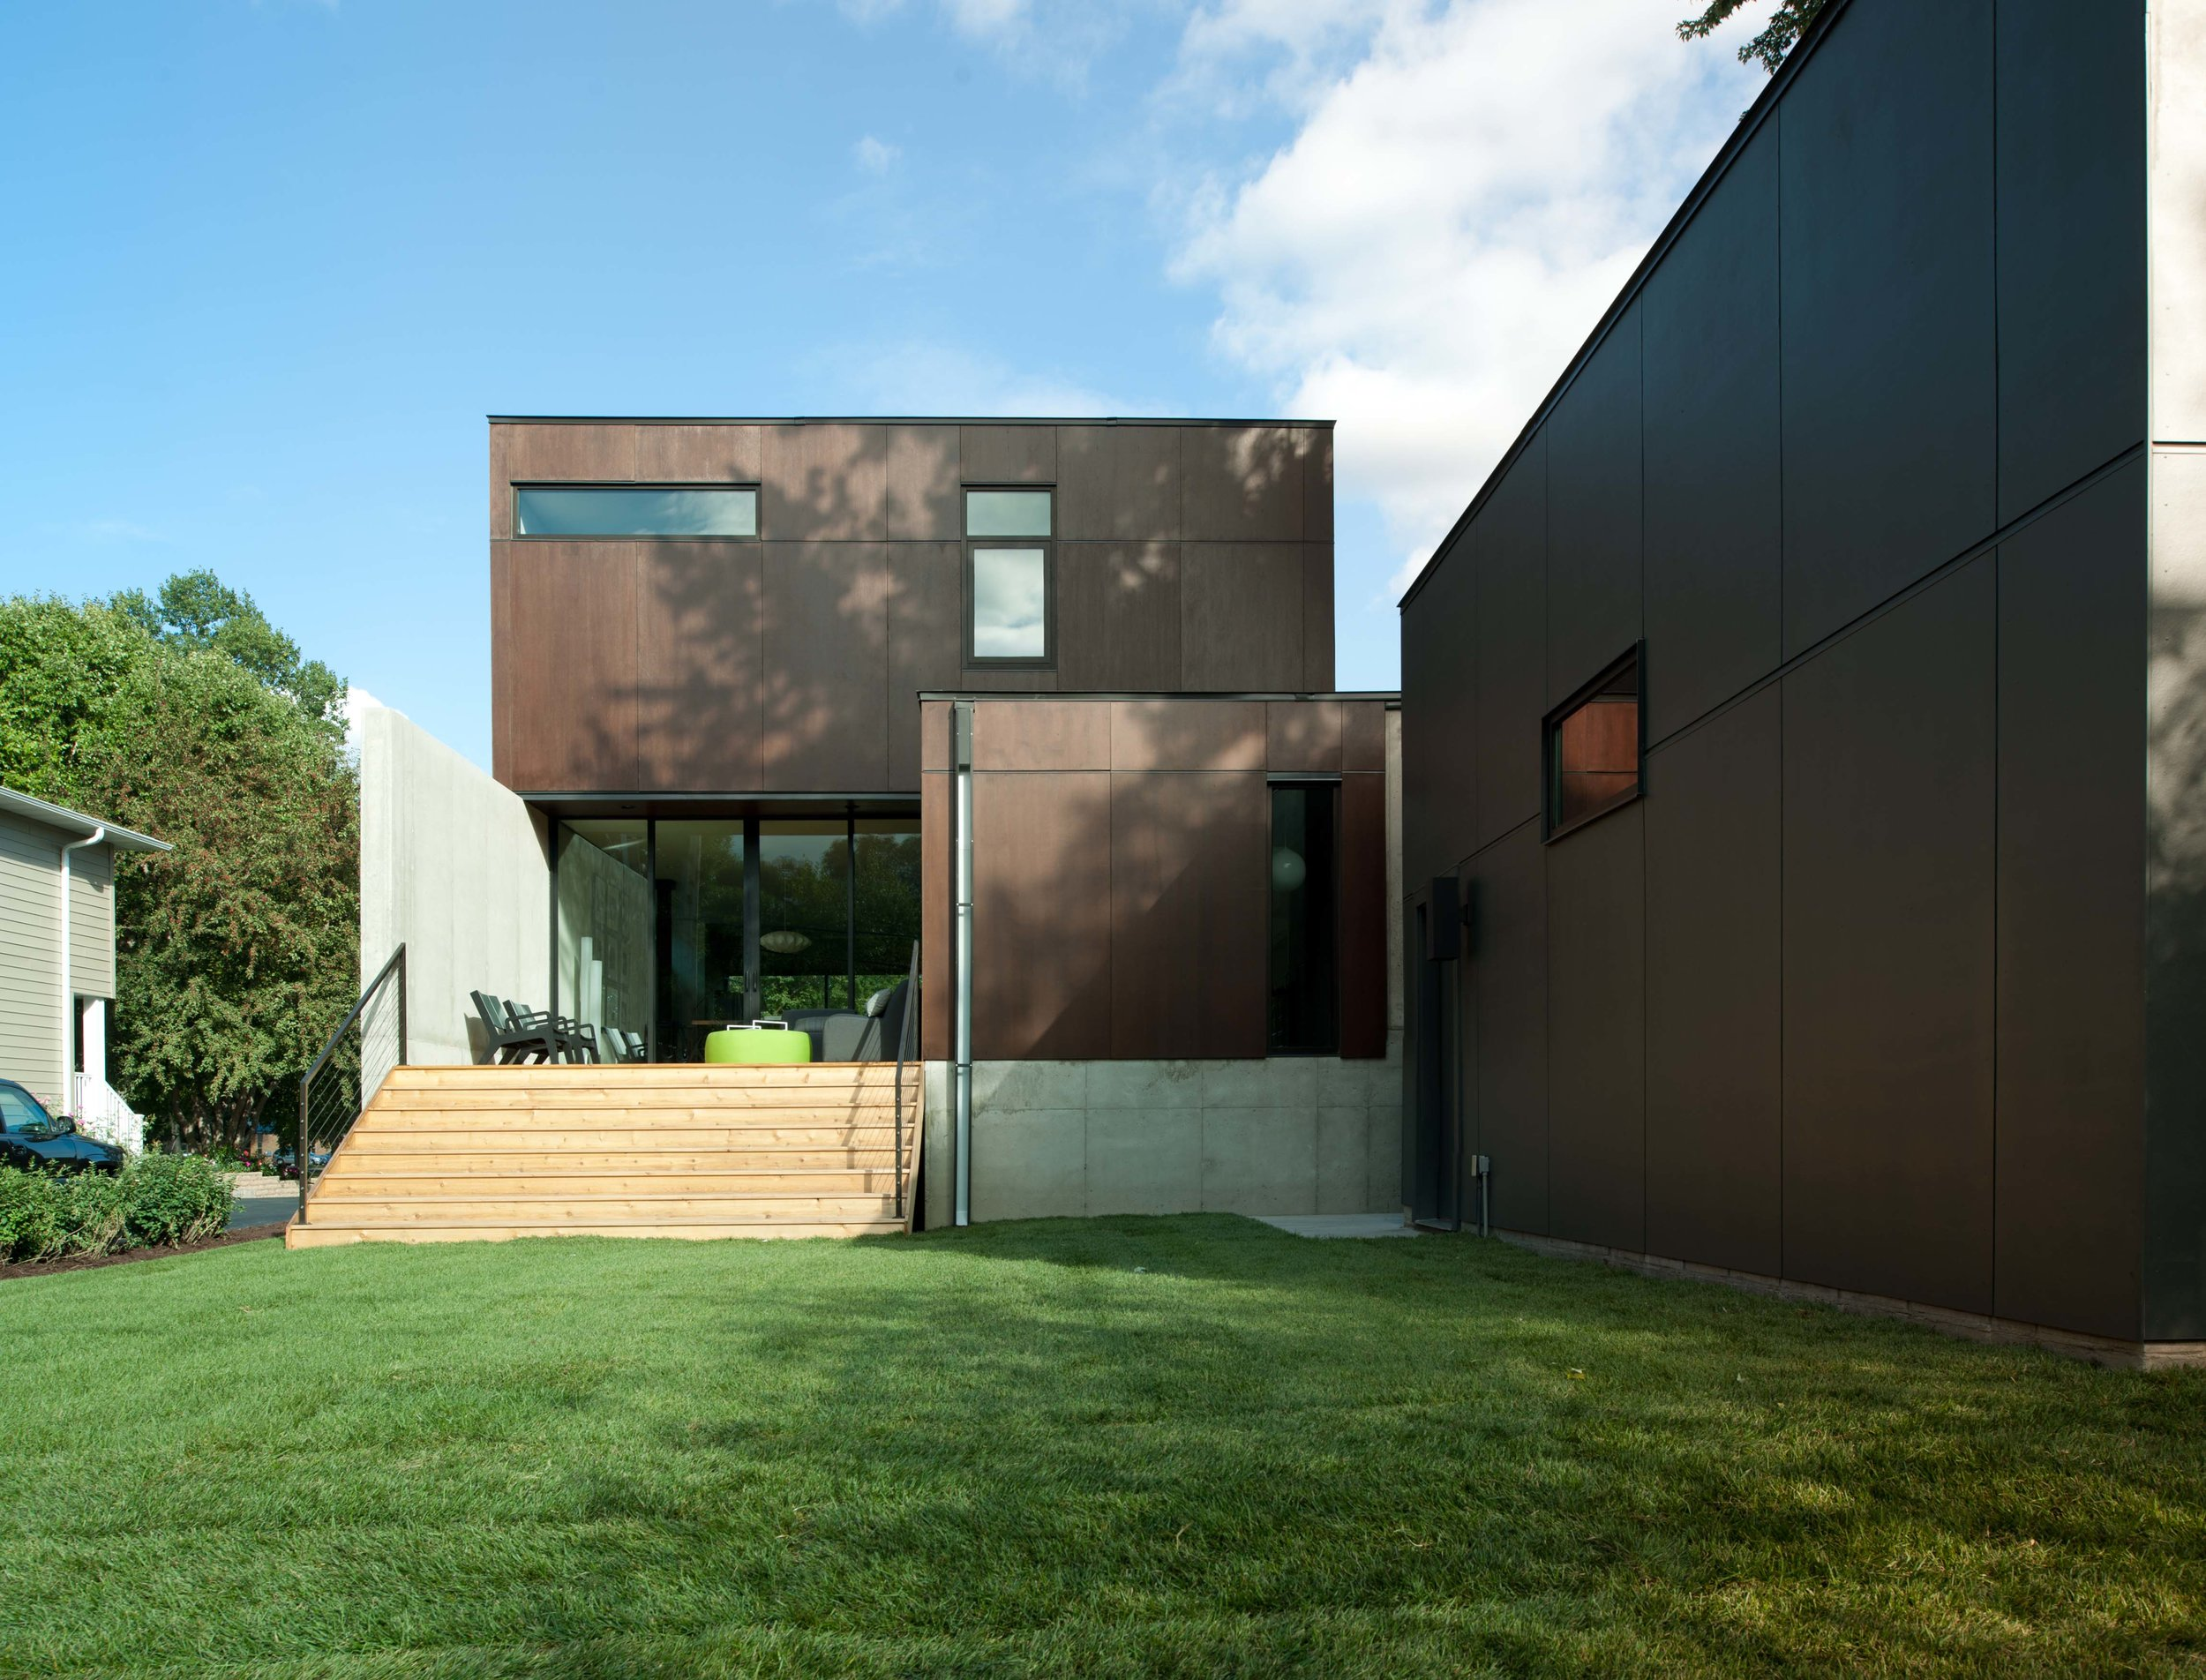 Modern corten steel and concrete home in Minneapolis by Christian Dean Architecture